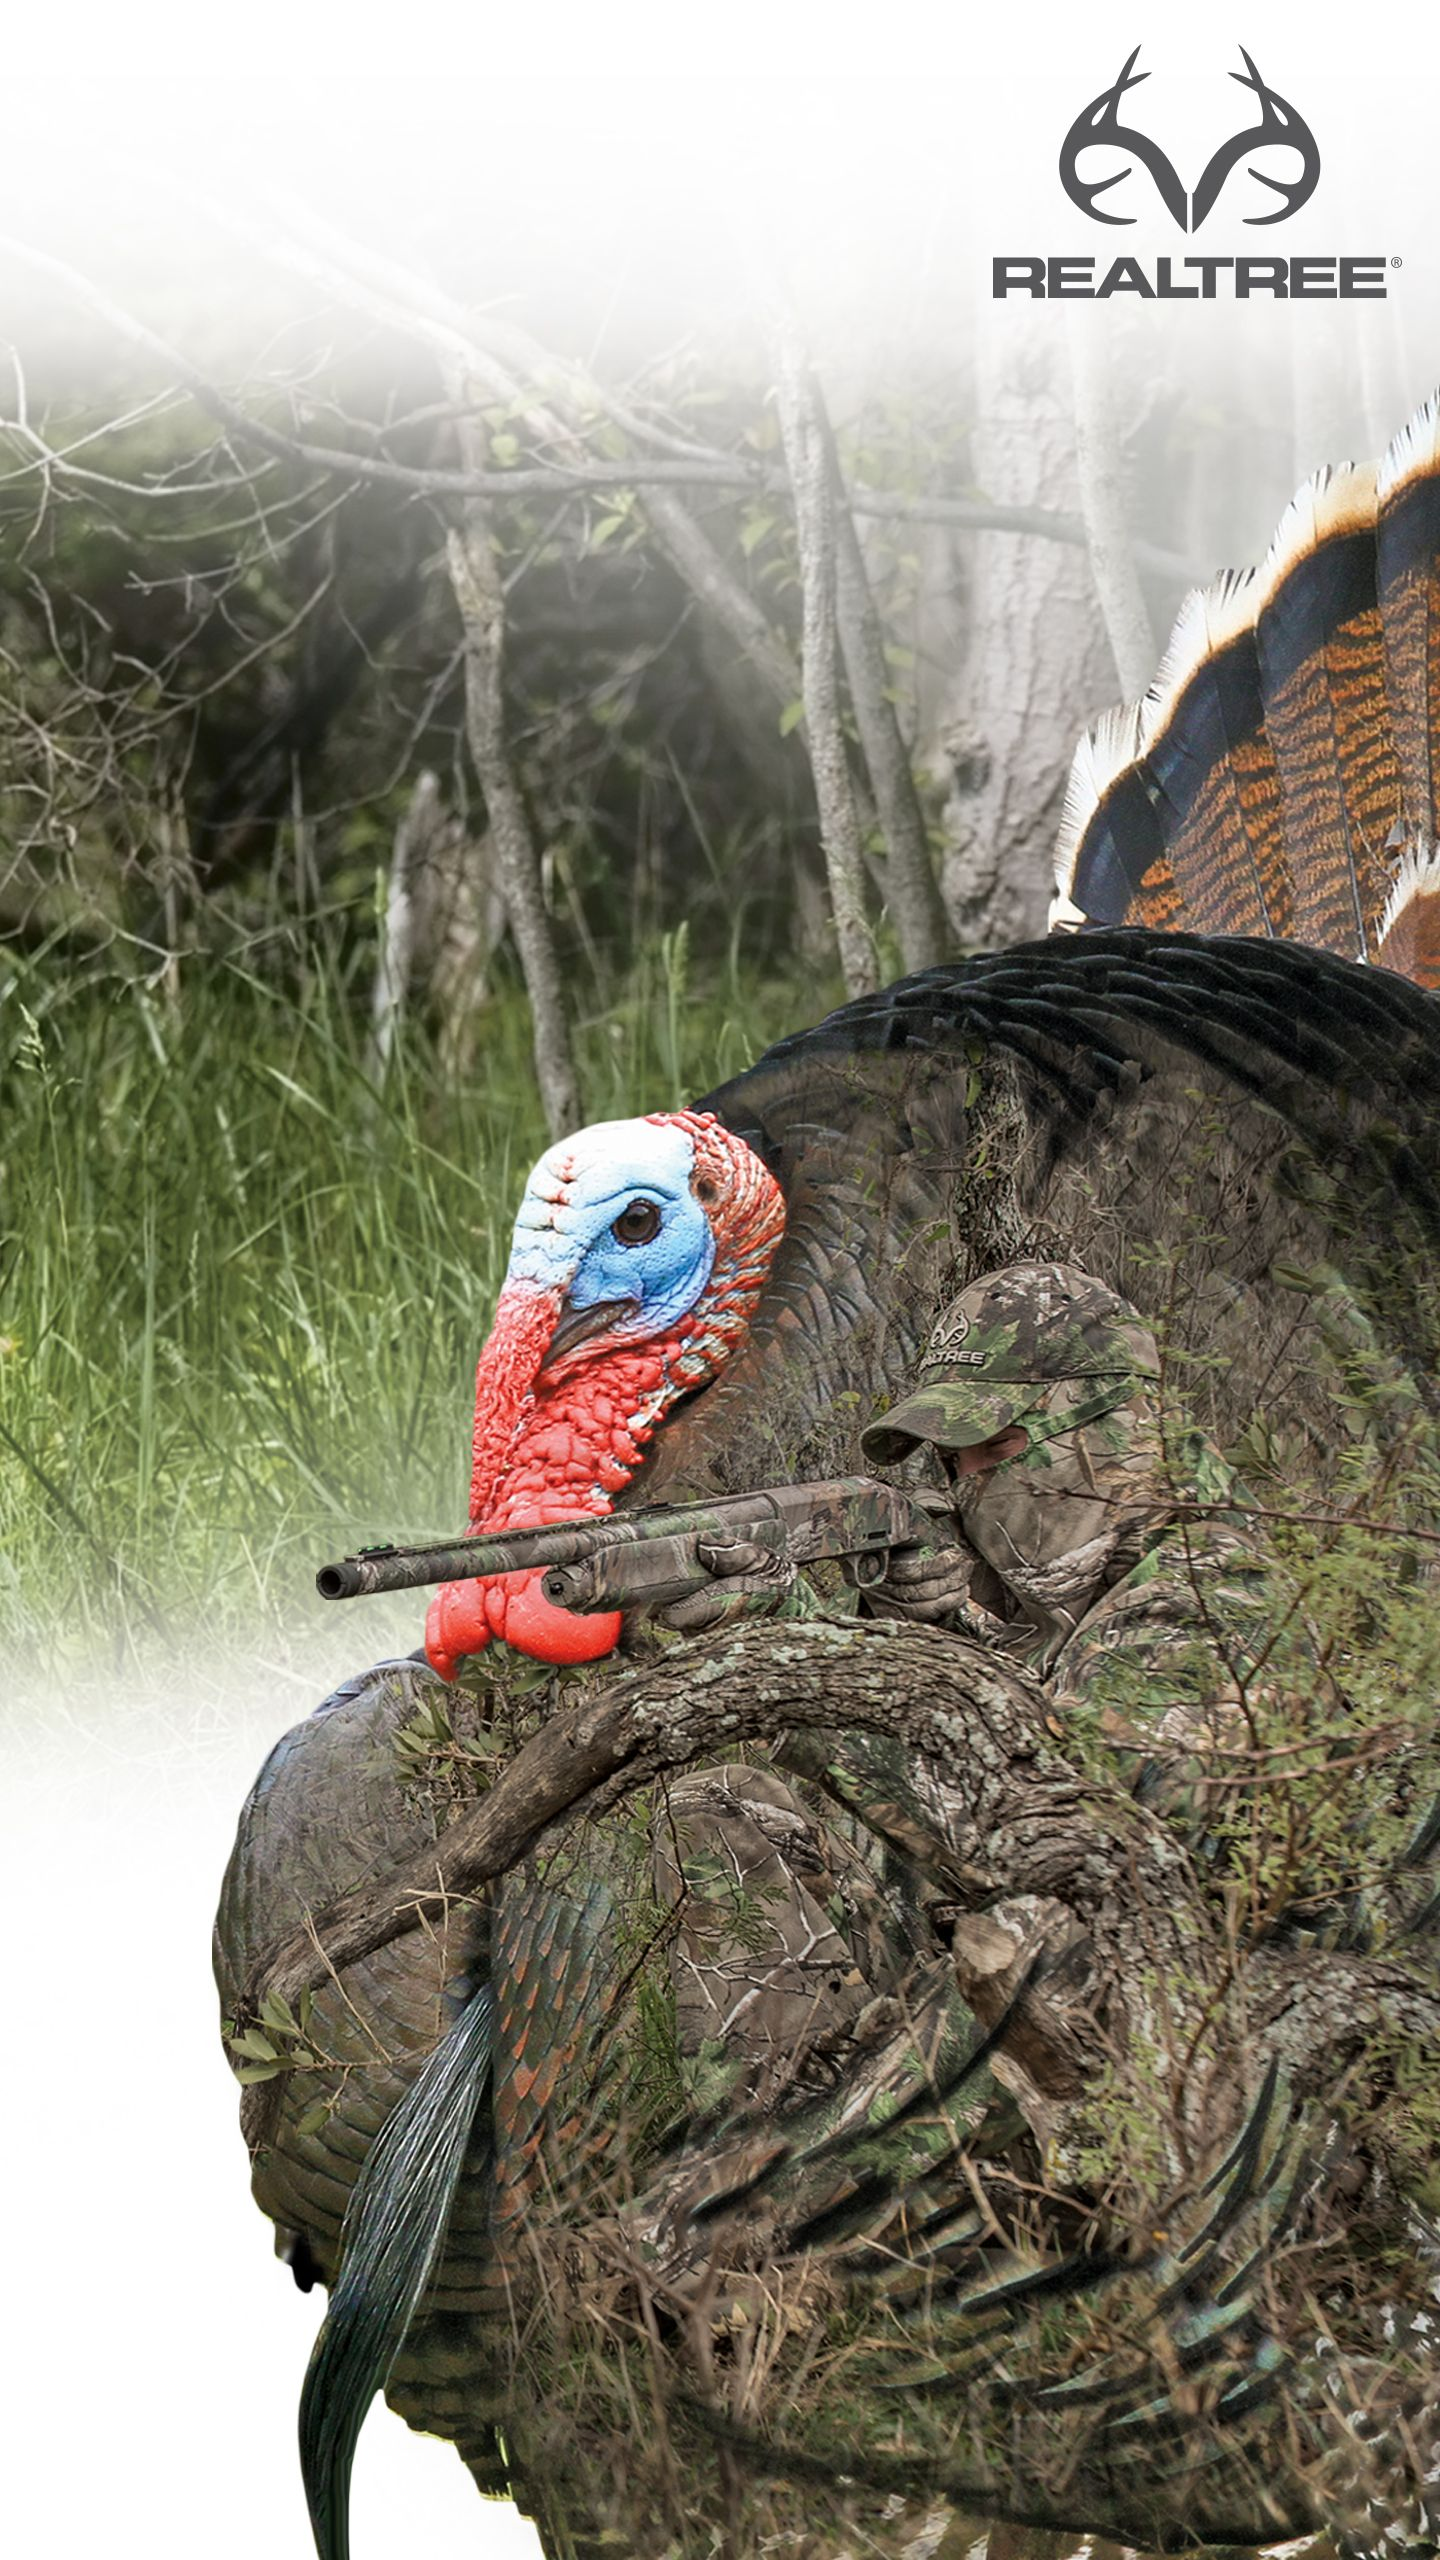 1440x2560 Wallpapers | Page 2 | Realtree